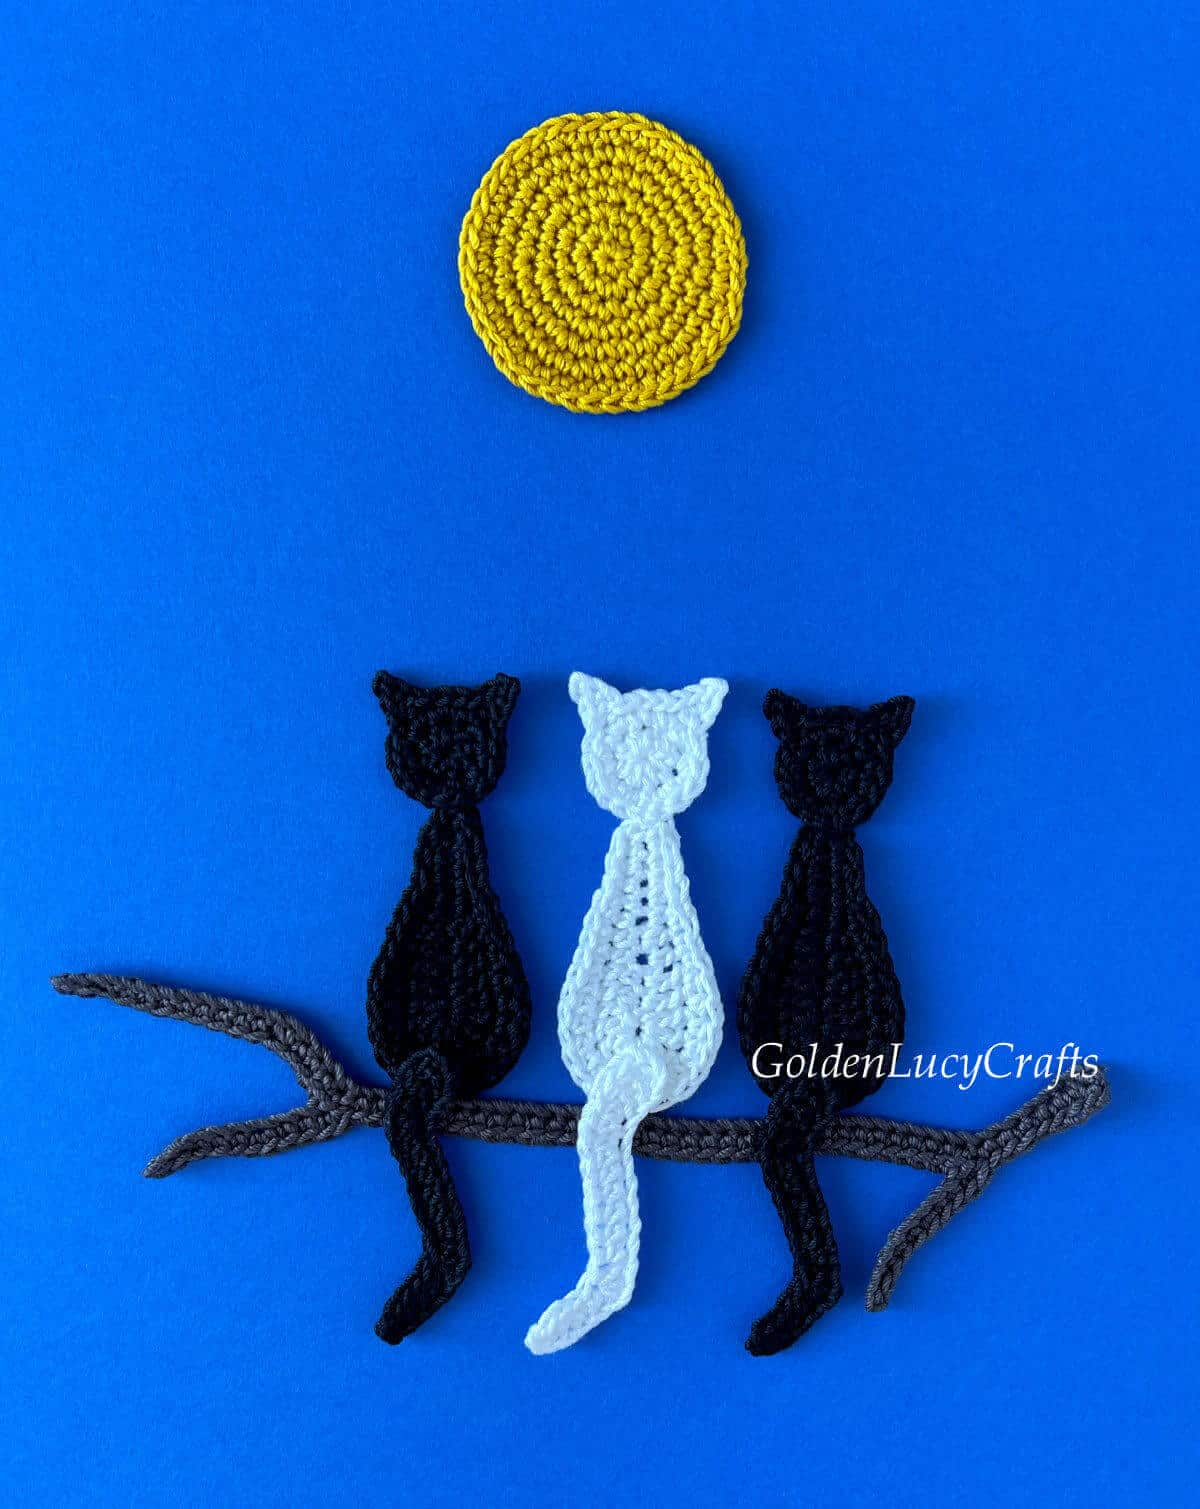 Crocheted two black and one white cats sitting on a tree branch under a full moon on dark blue background.